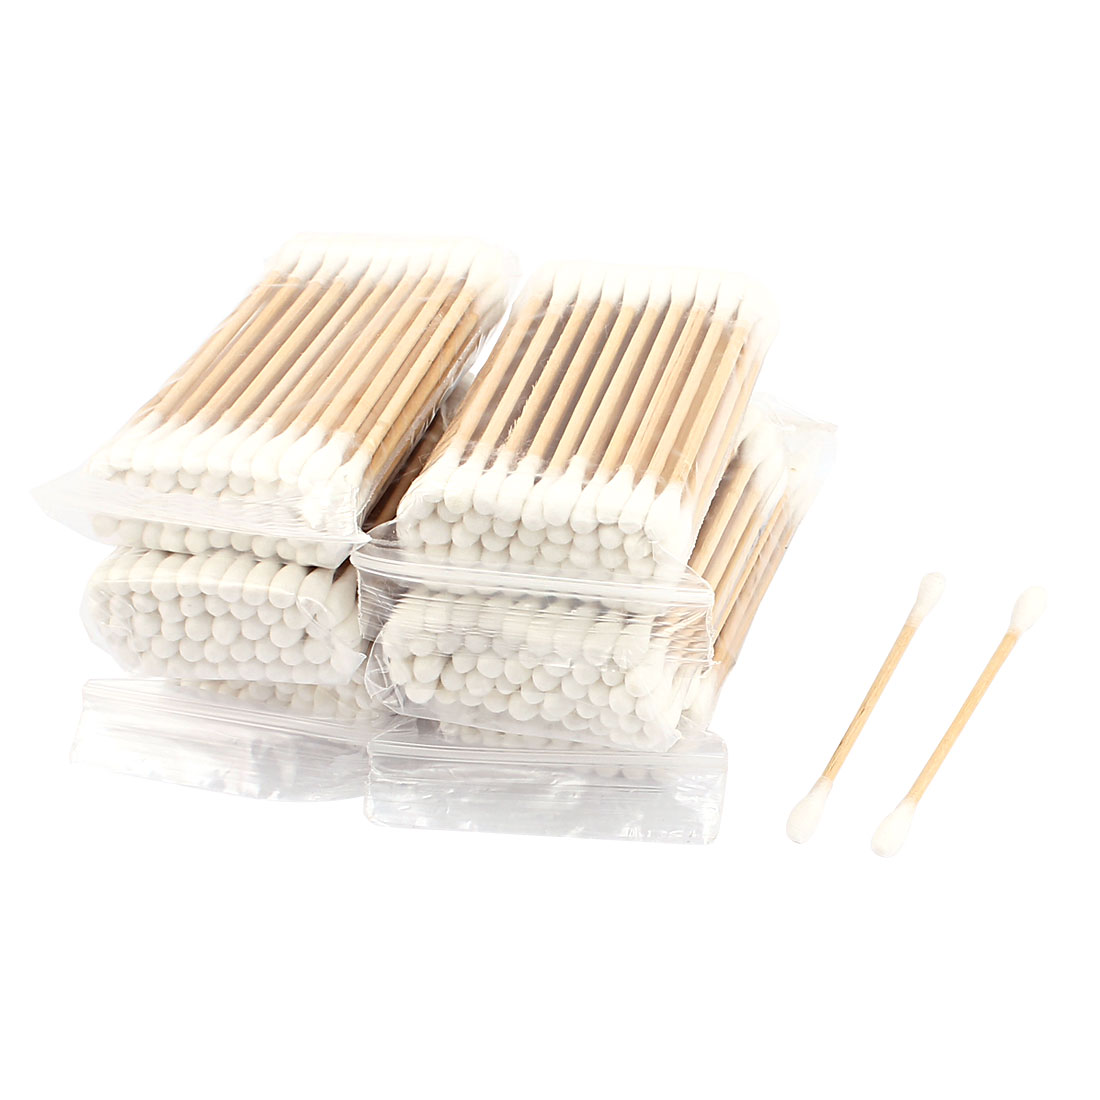 Wood Rod Cotton Swab Double End Ear Picks Cosmetics Earwax Removing Tool 1200pcs